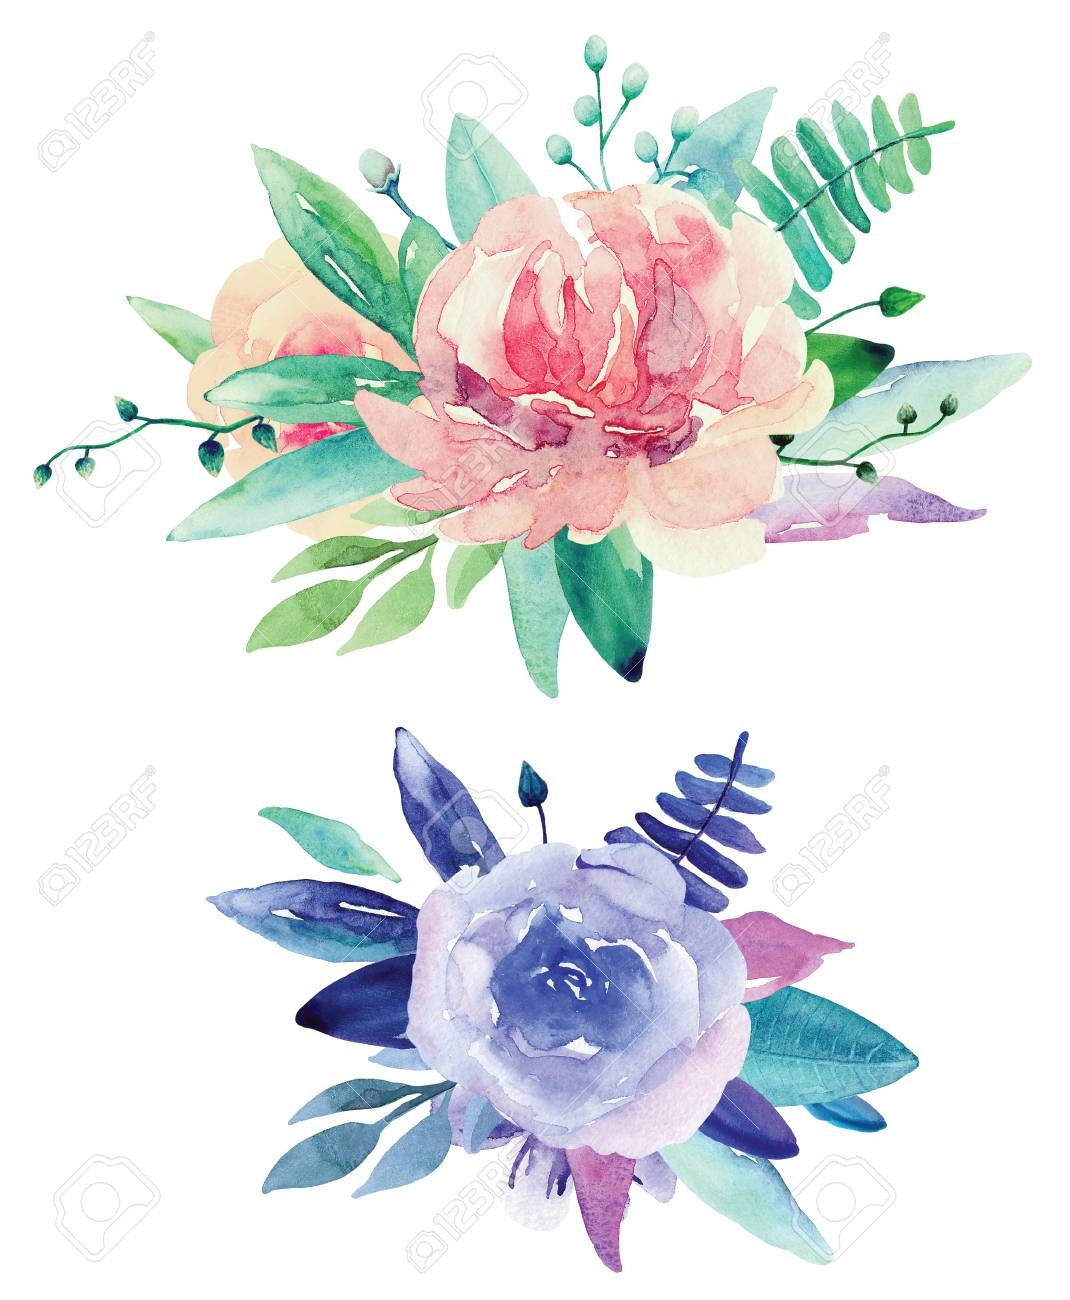 Watercolor floral bouquets clip art pink and purple flowers stock stock photo watercolor floral bouquets clip art pink and purple flowers clipart izmirmasajfo